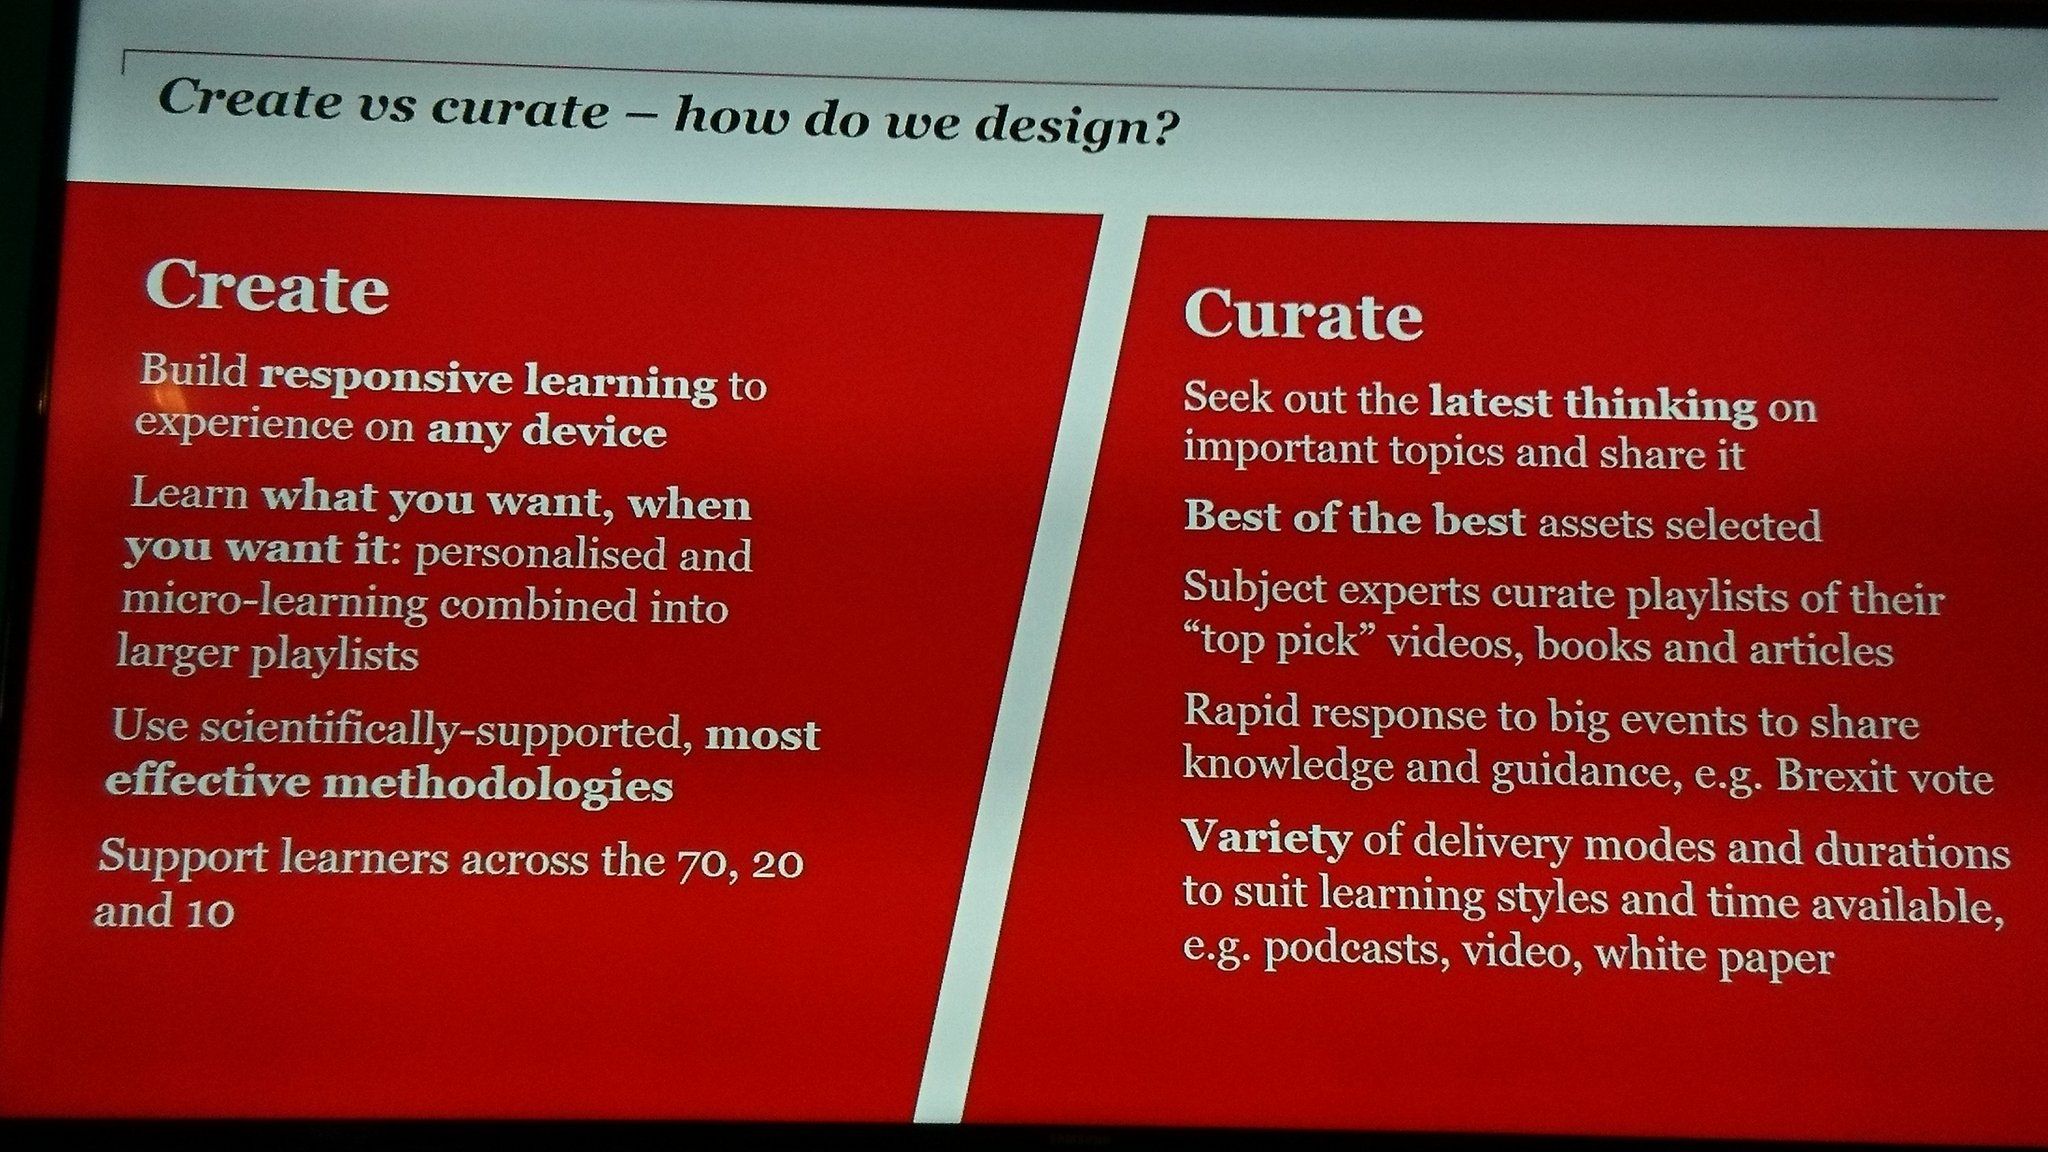 .@PriceKisskadee @sarahlindsell Nice summary of creating vs curating for learning from @sarahlindsell #G2 #cipdLDshow https://t.co/pgFRYCNcmK